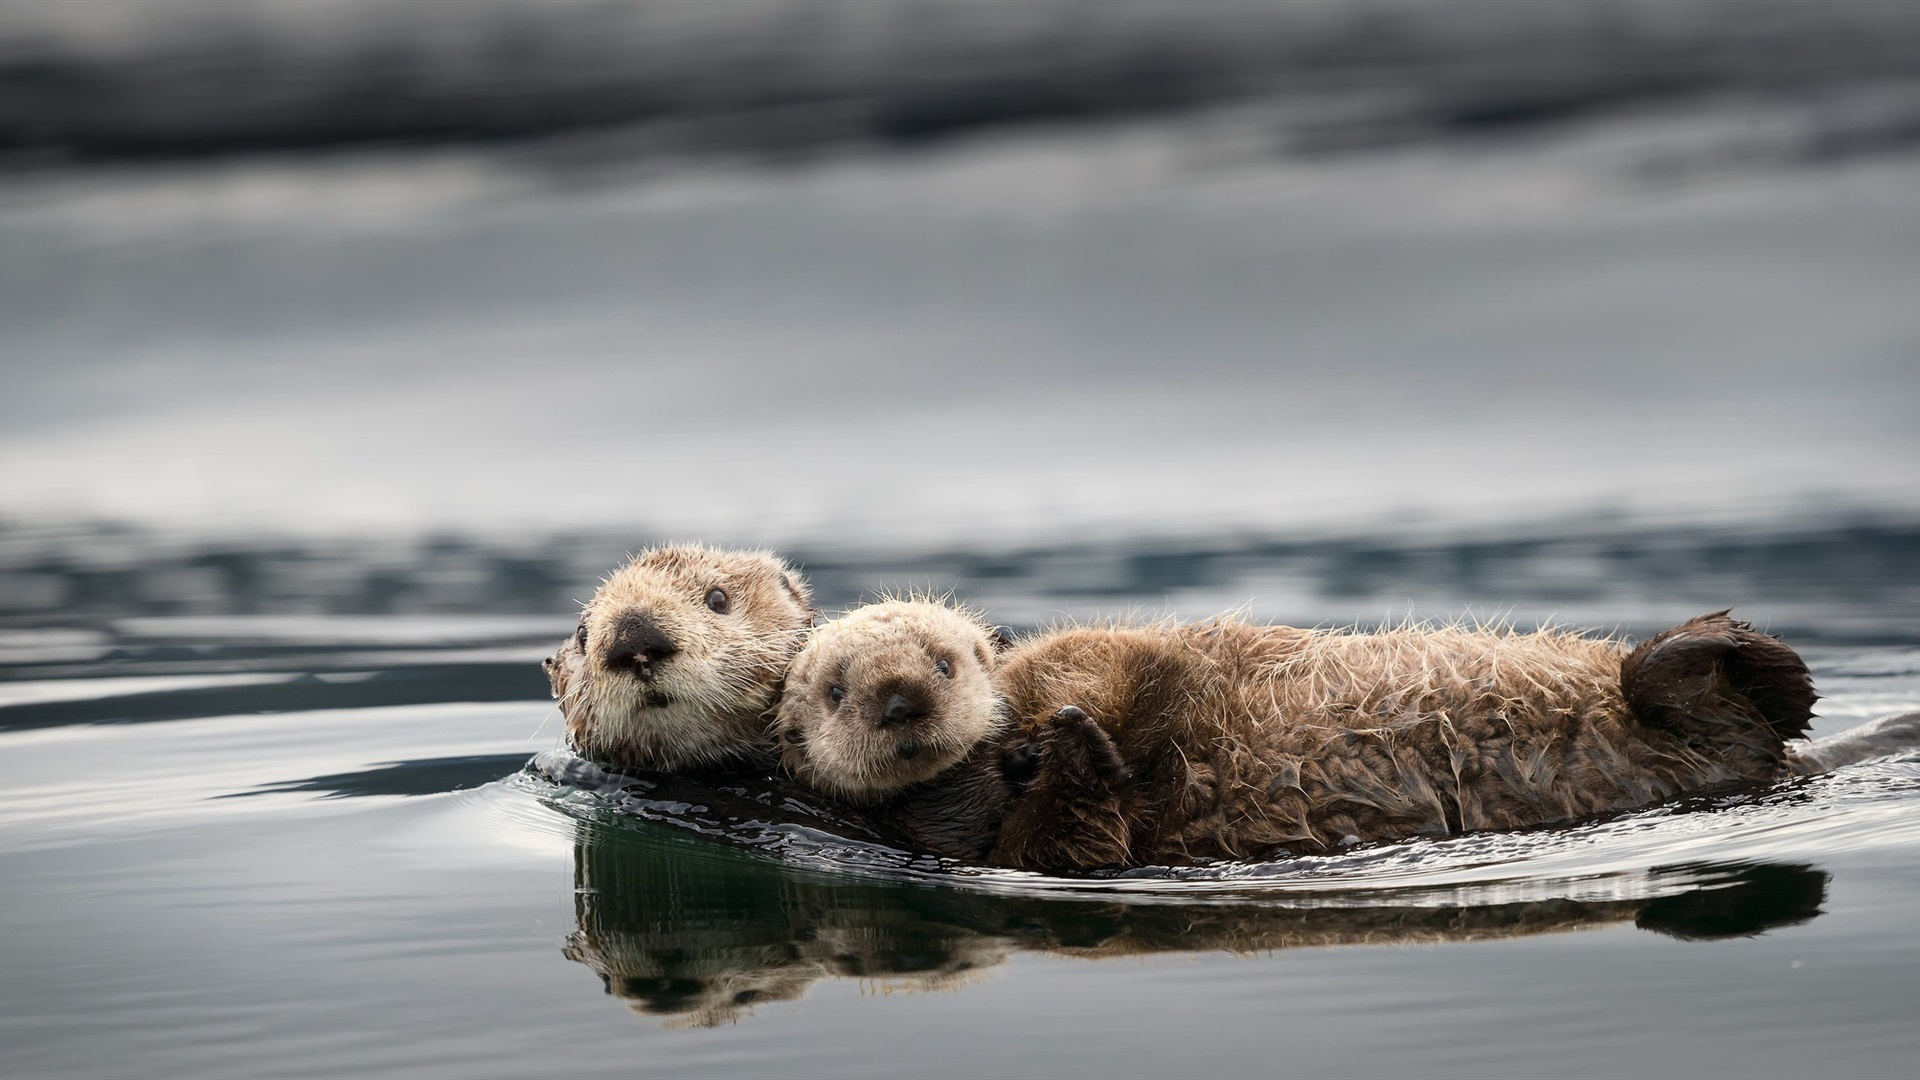 Wallpaper Cute Otters Water 1920x1080 Full Hd 2k Picture Image